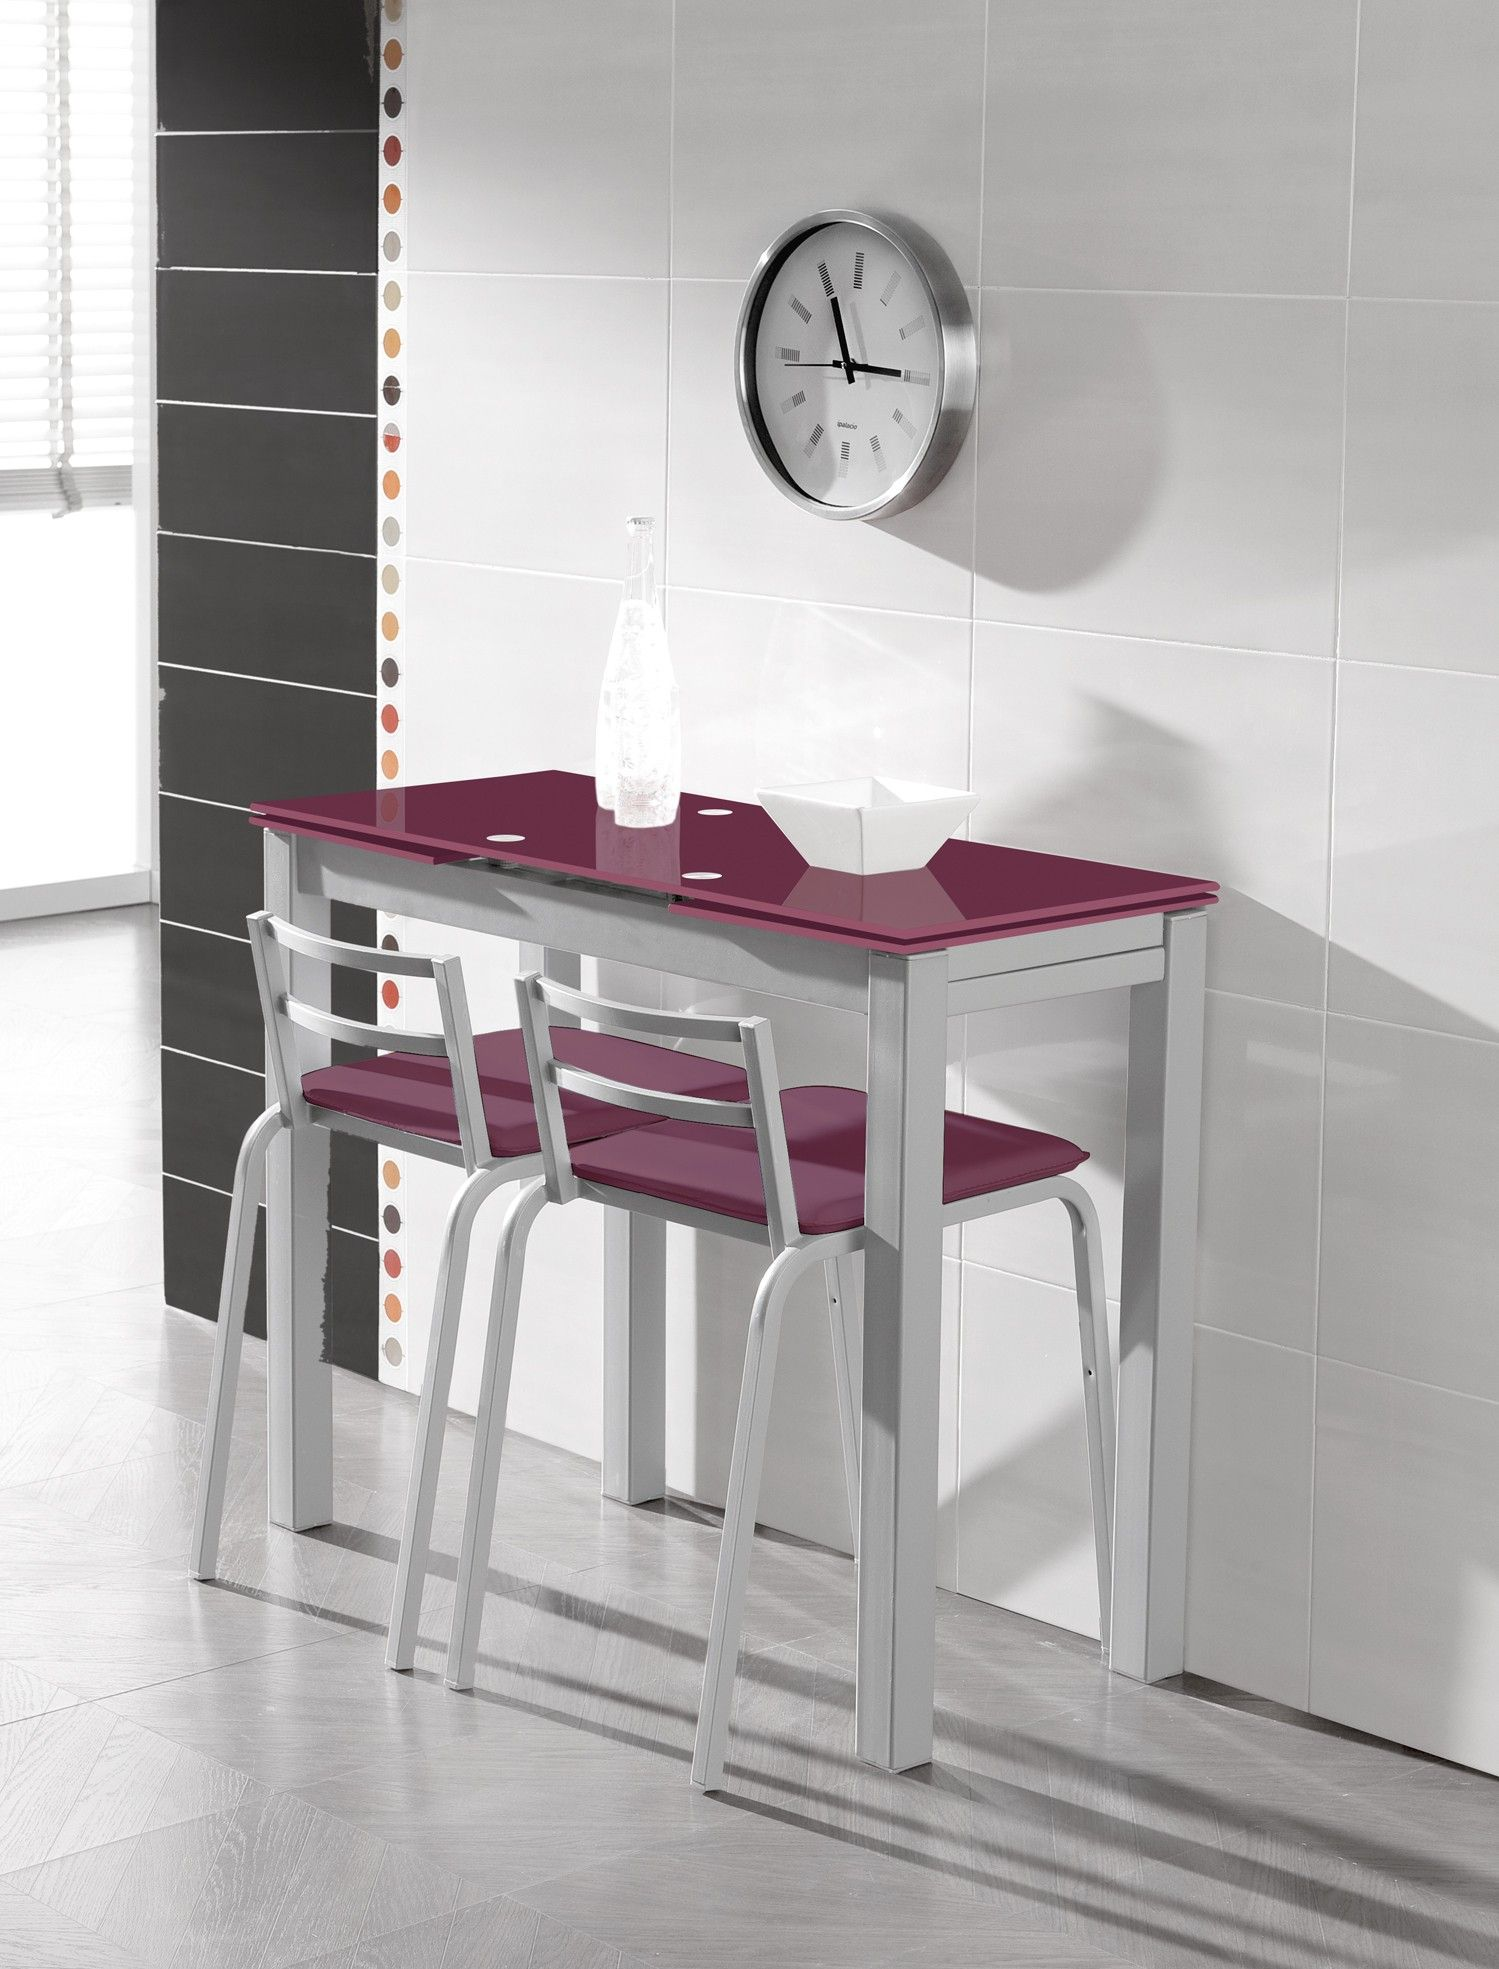 MESA EXTENSIBLE ÓPTIMA en Conforama | Decoraciòn | Pinterest | Table ...